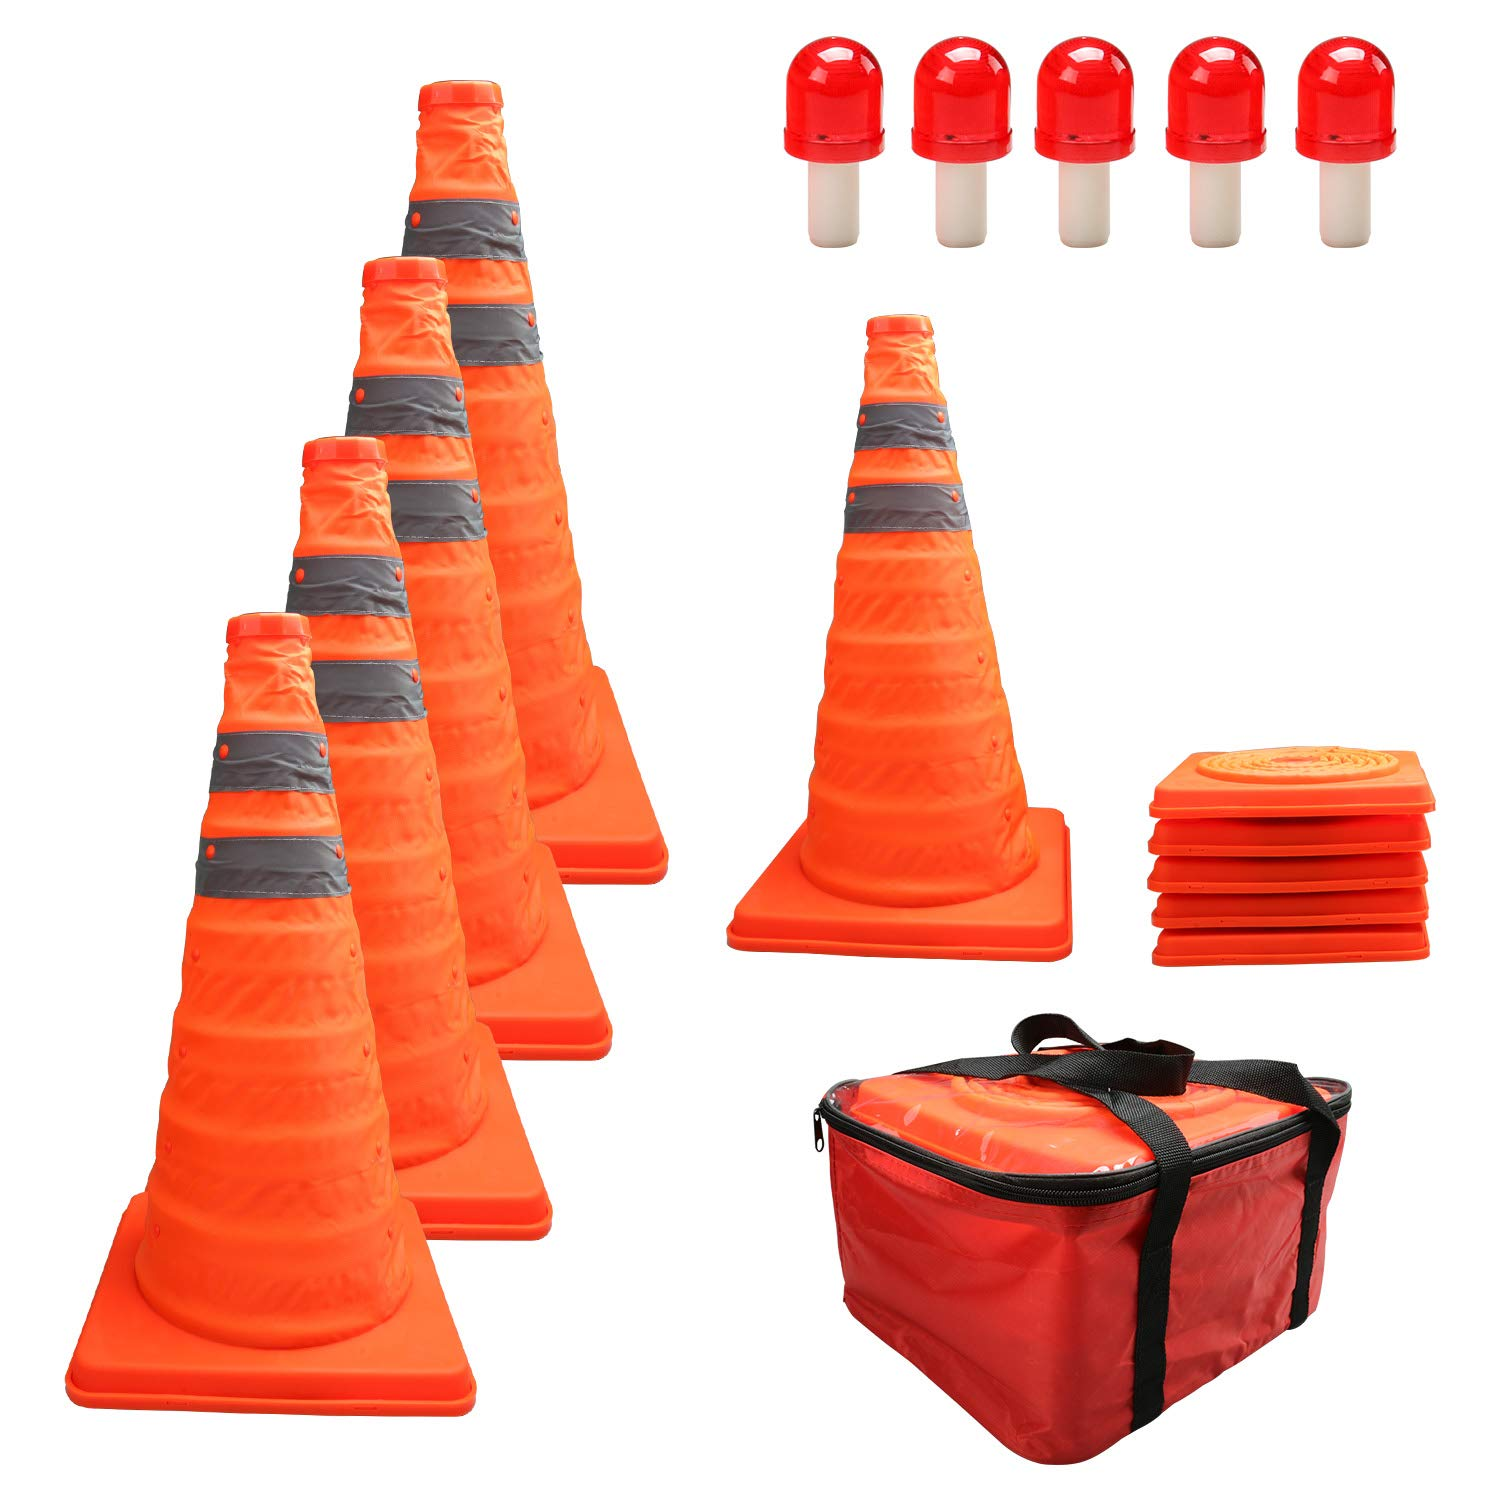 HYDDNice 5 Pack 18'' Collapsible Traffic Cones with LED Lights Reflective Safety Cones 2 Reflective Silver Strips